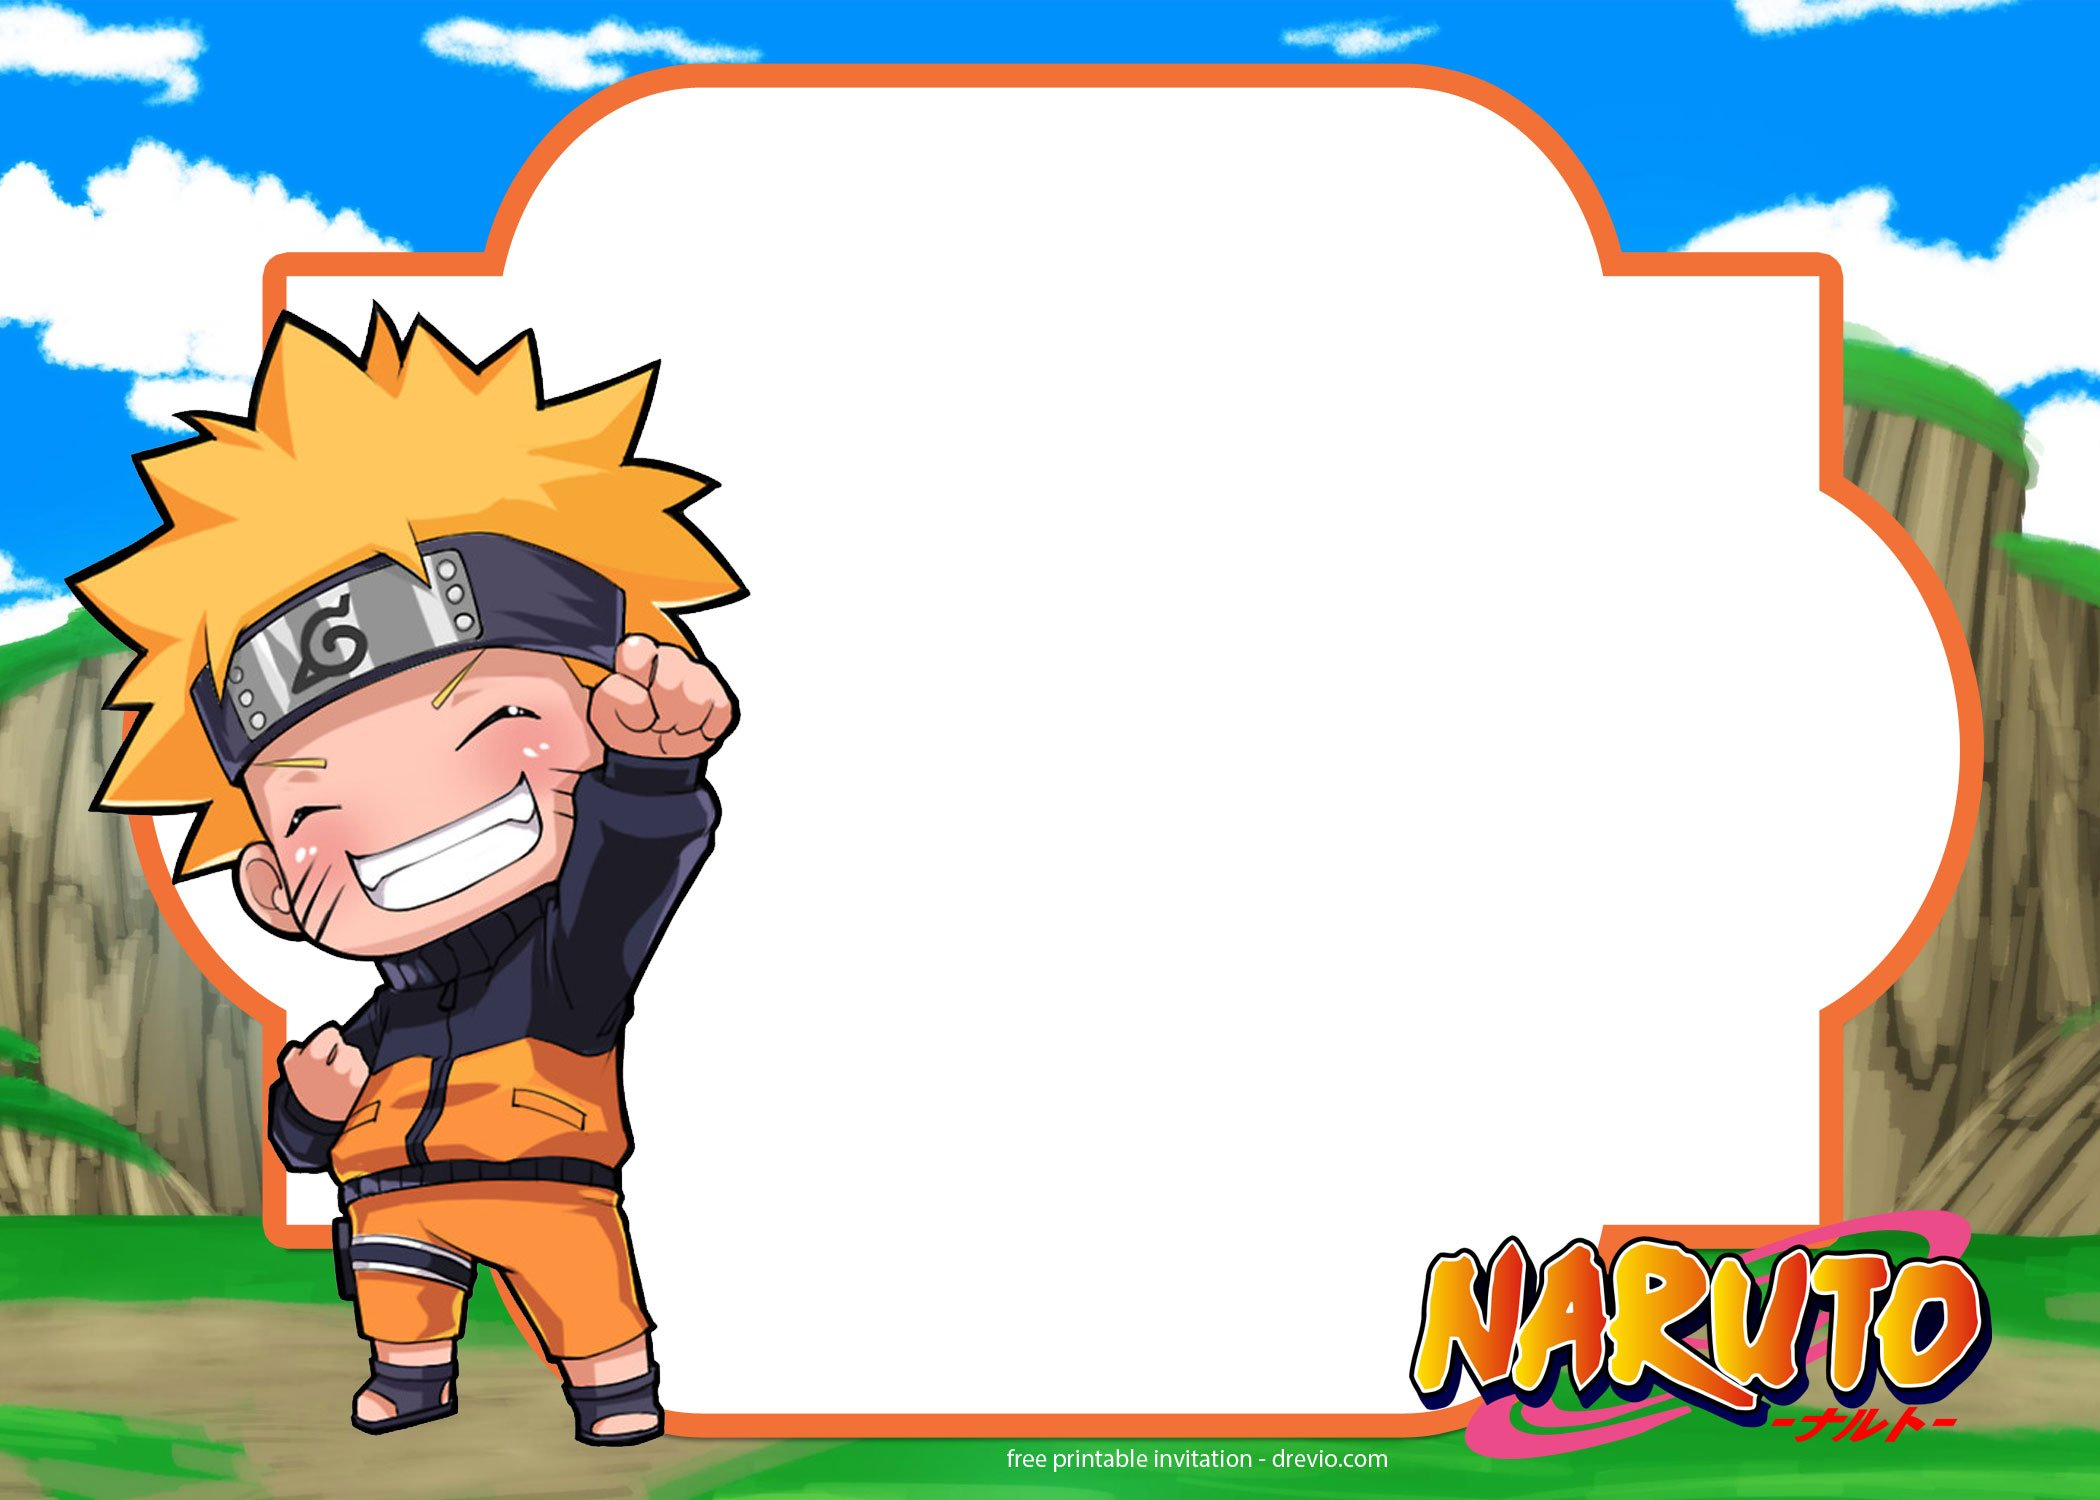 FREE Printable Naruto Birthday Invitation Template | FREE Invitation ...